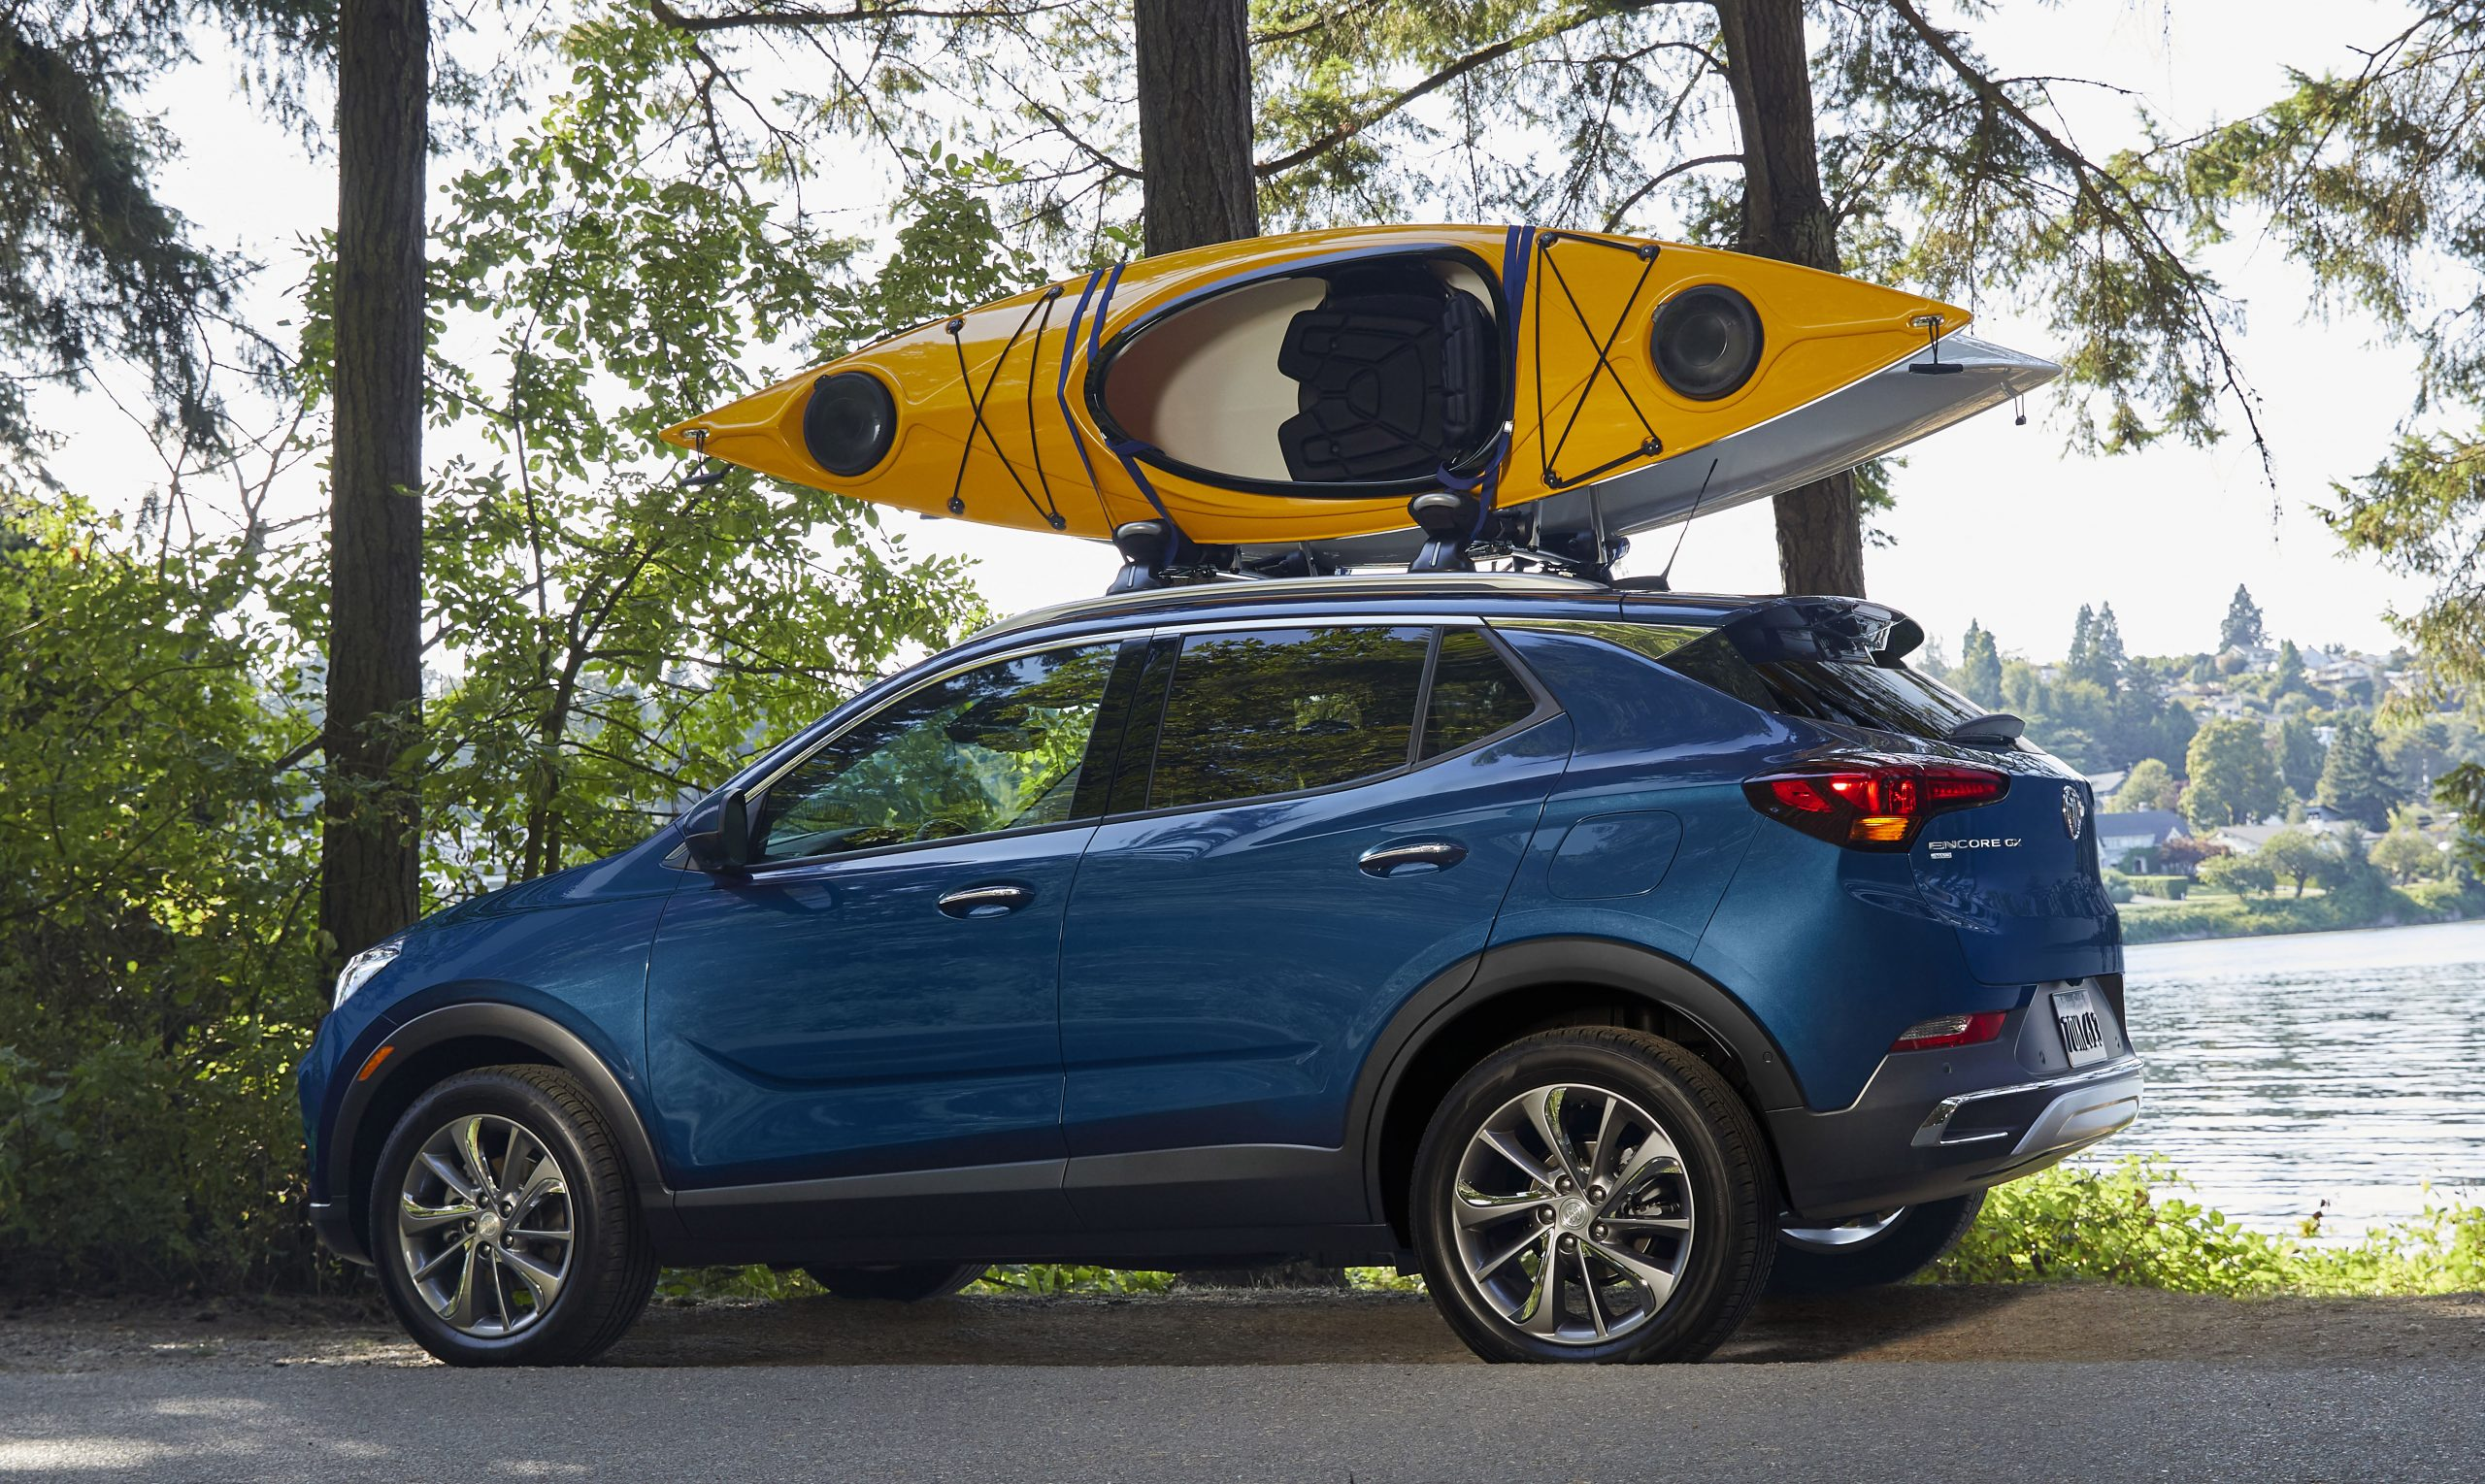 Buick Encore Gx Discount, Special Lease Offer June 2020 | Gm New 2021 Buick Encore Gx Incentives, Inventory, Lease